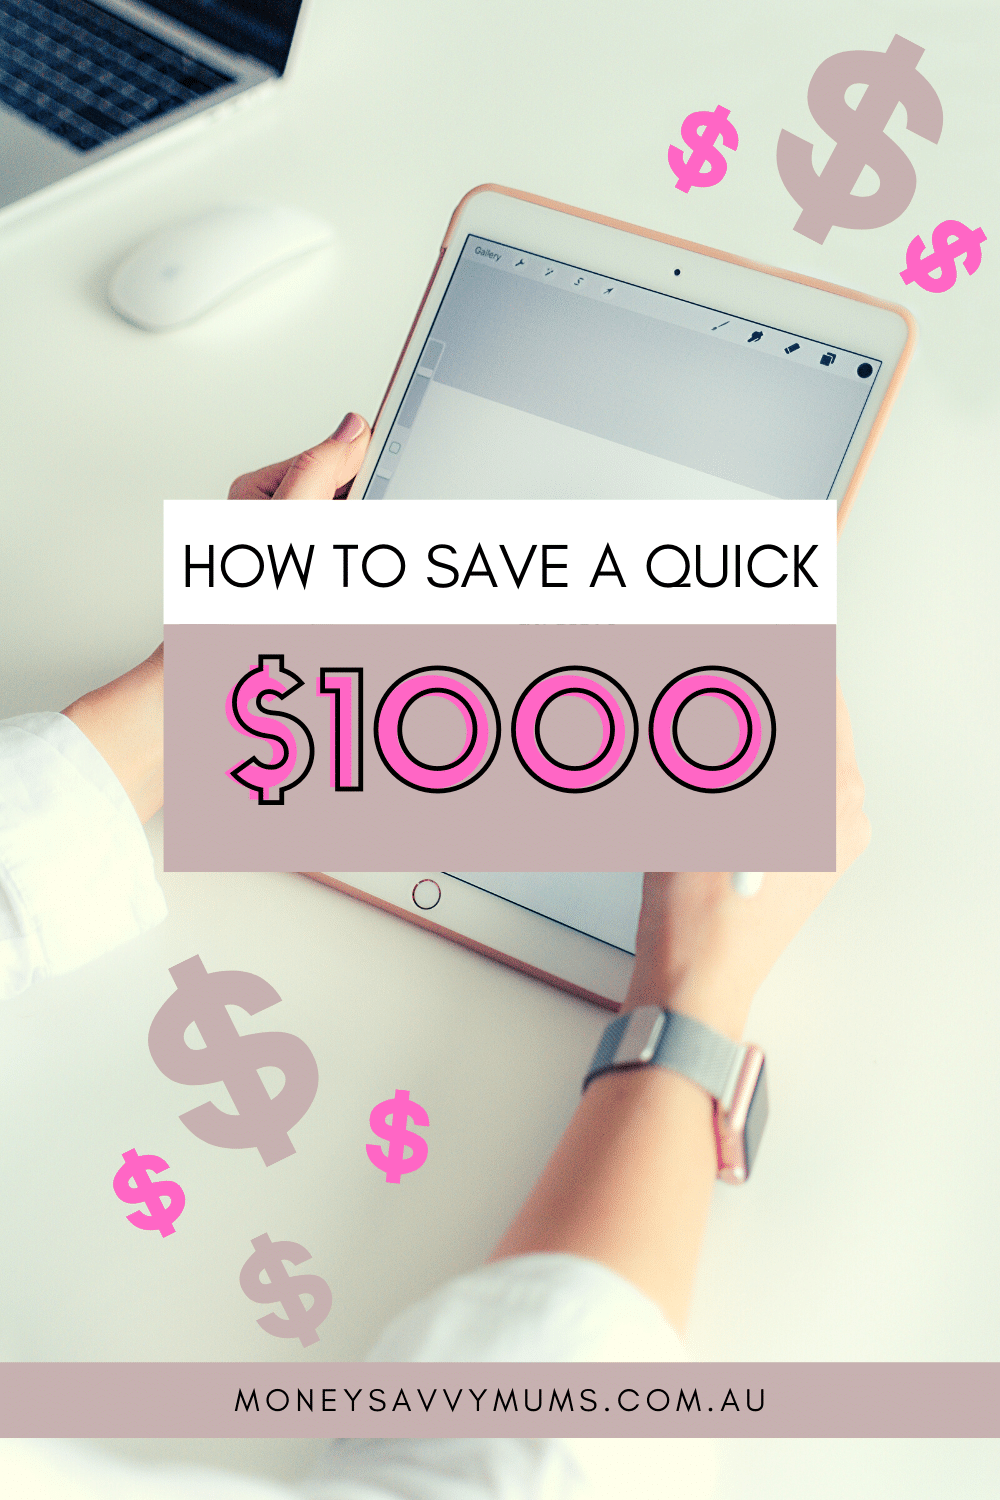 How to save $1000 quickly